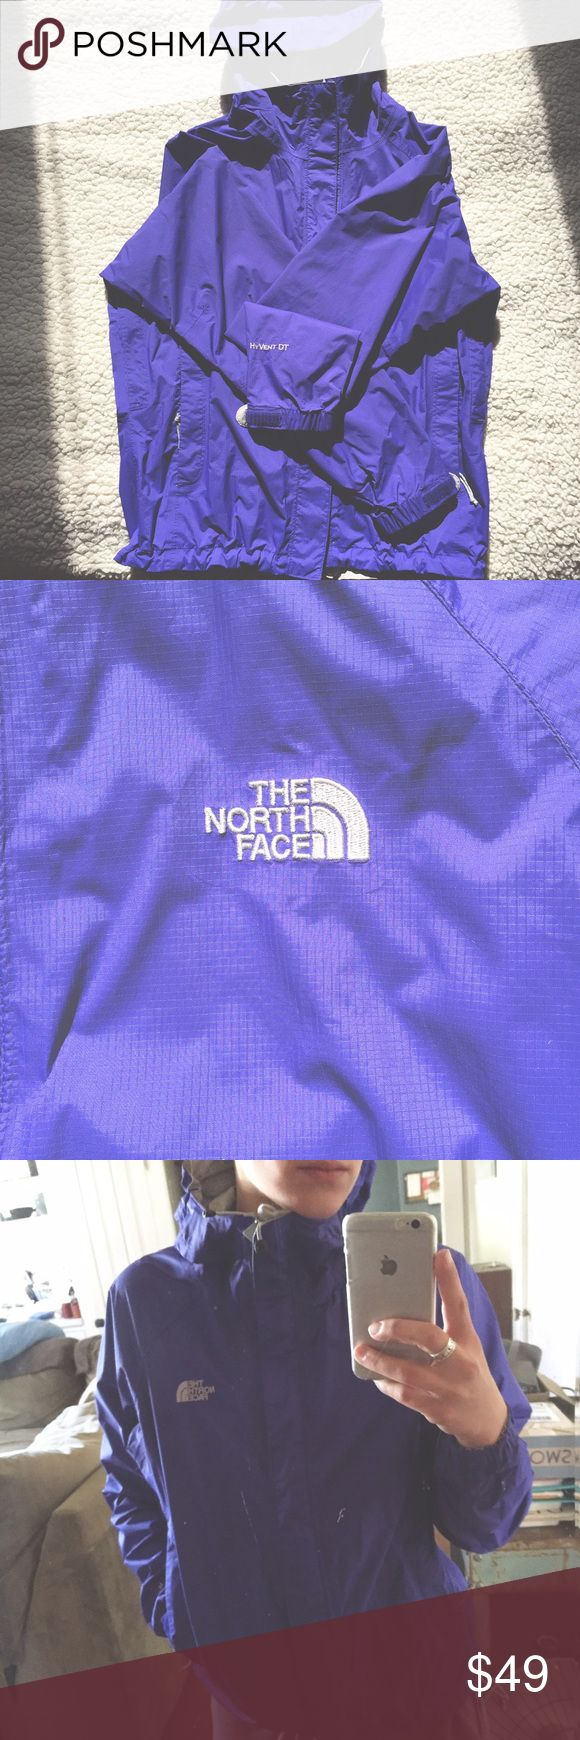 Indigo Northface Windbreaker HyventDT Gently worn, some wear on the inside, brand new from outside! North Face Jackets & Coats Utility Jackets